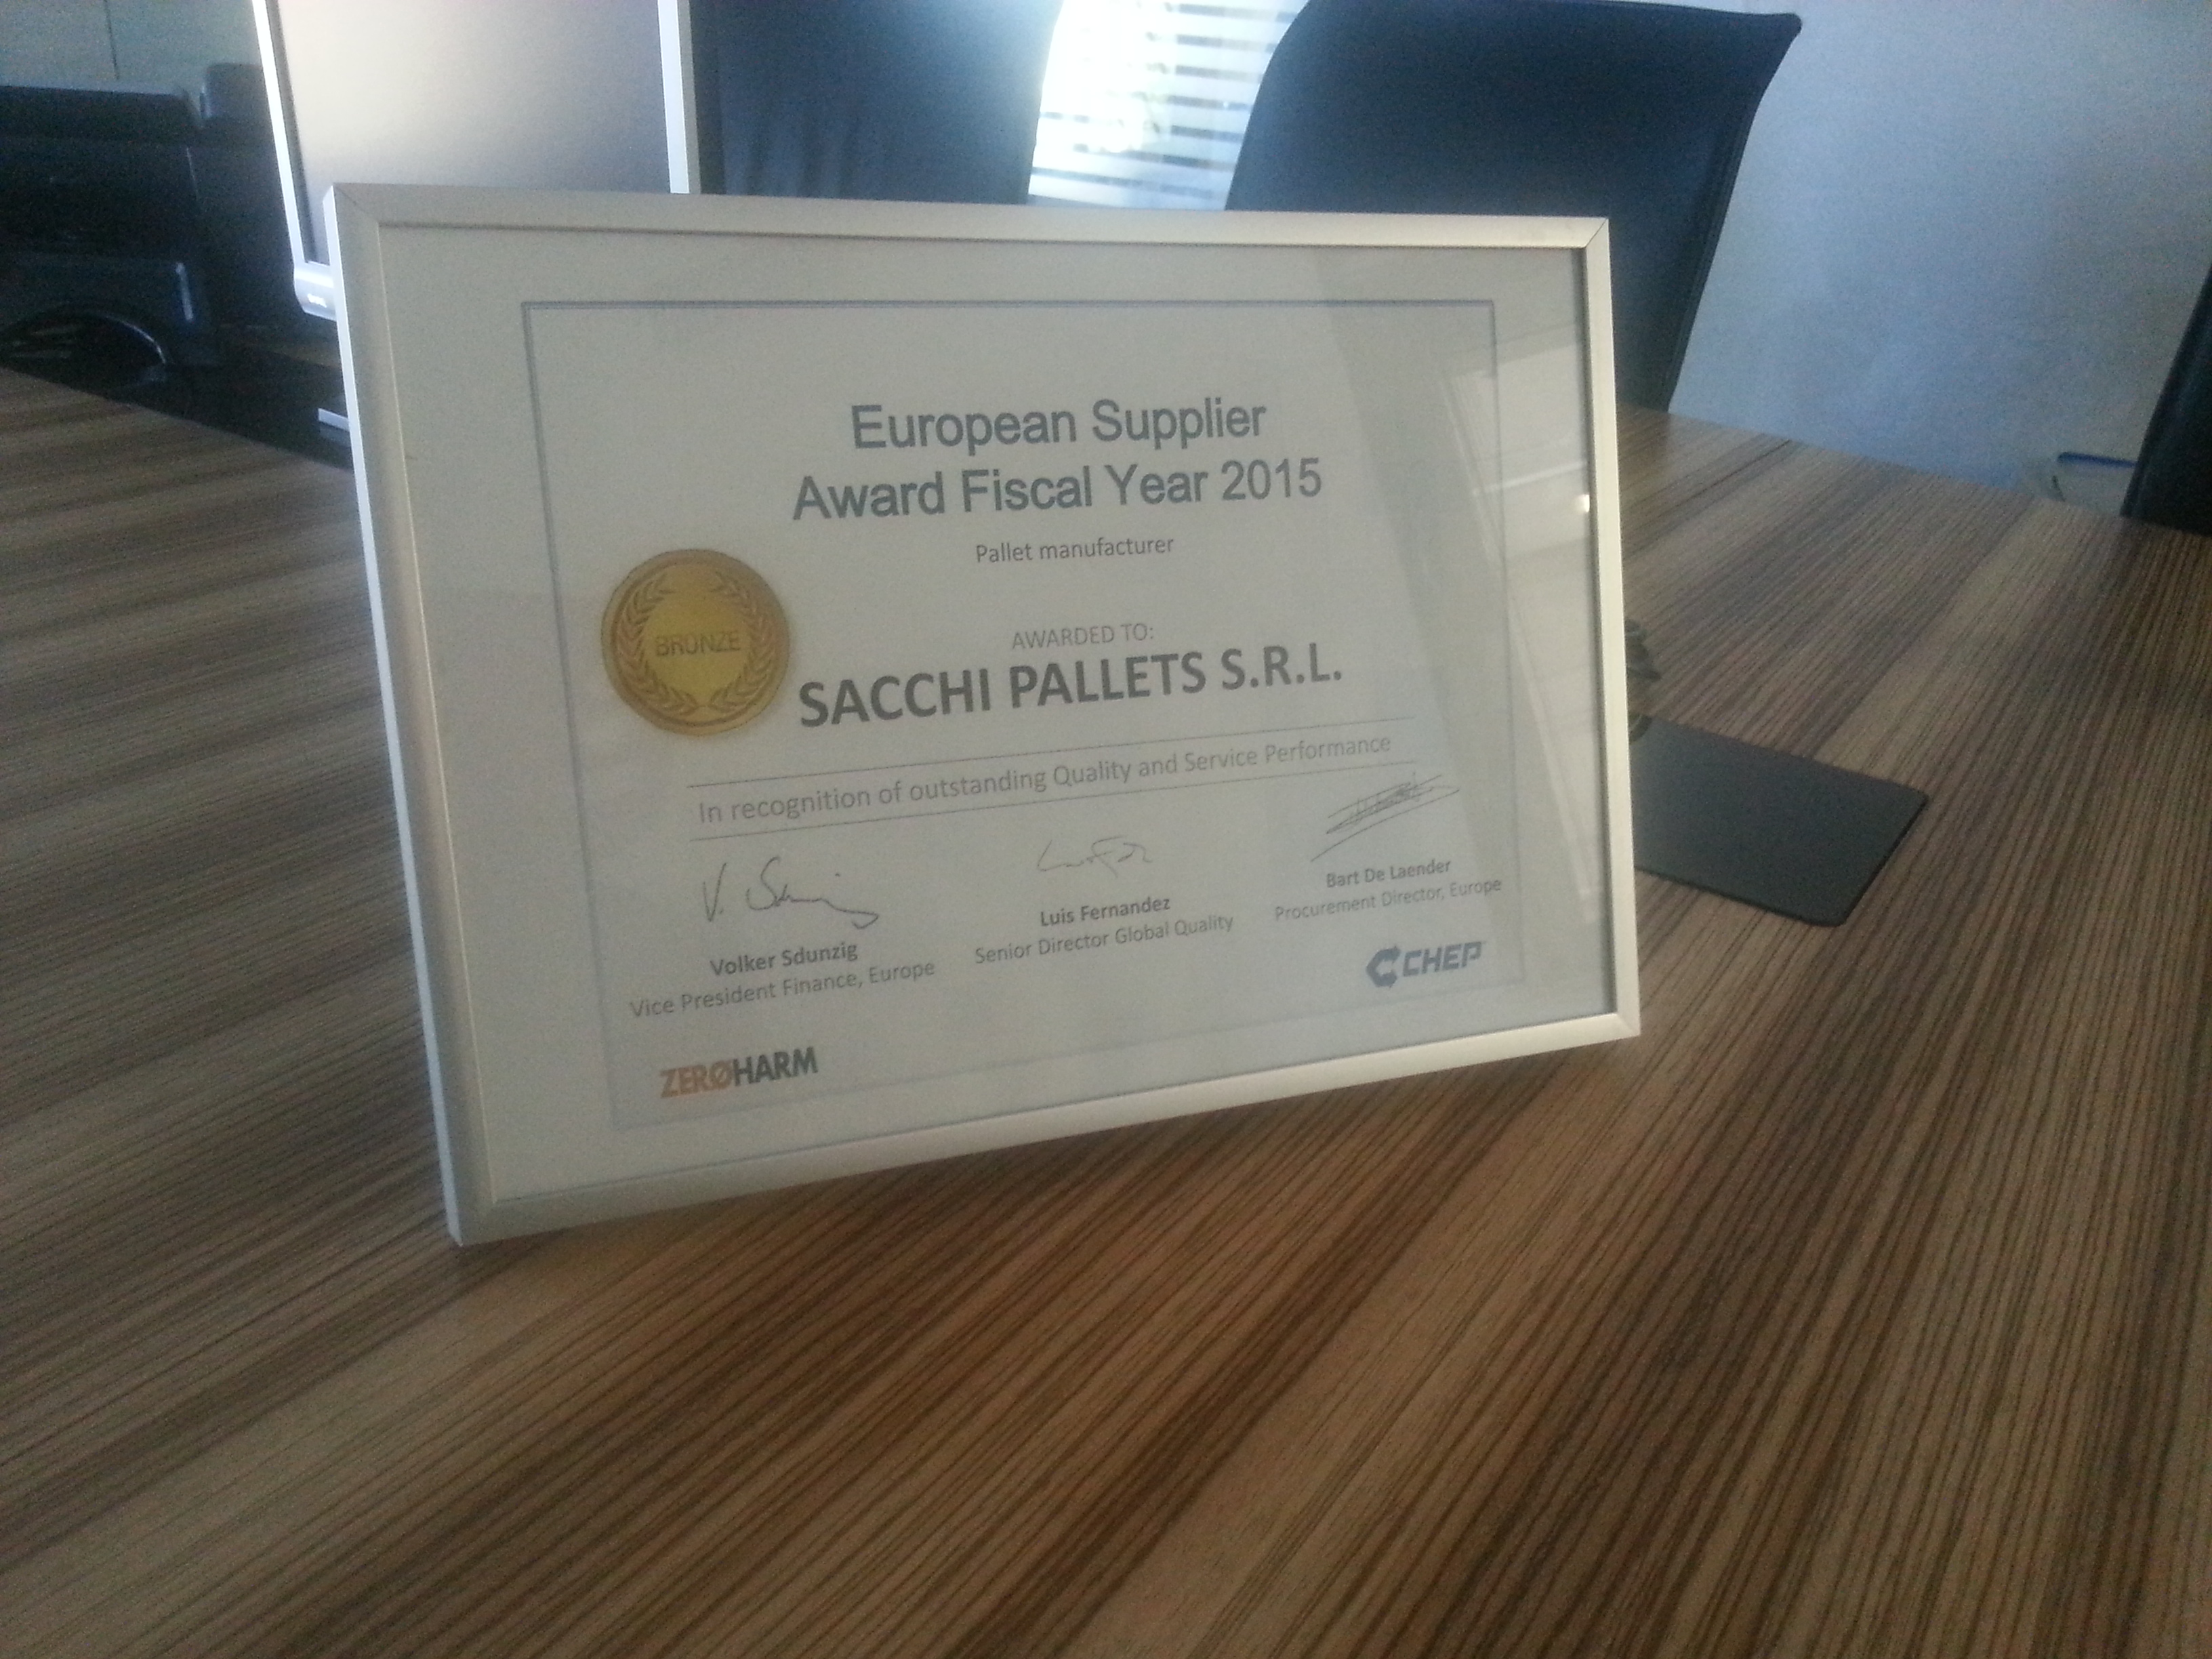 Chep European Supplier Award 2015 - Sacchipallets